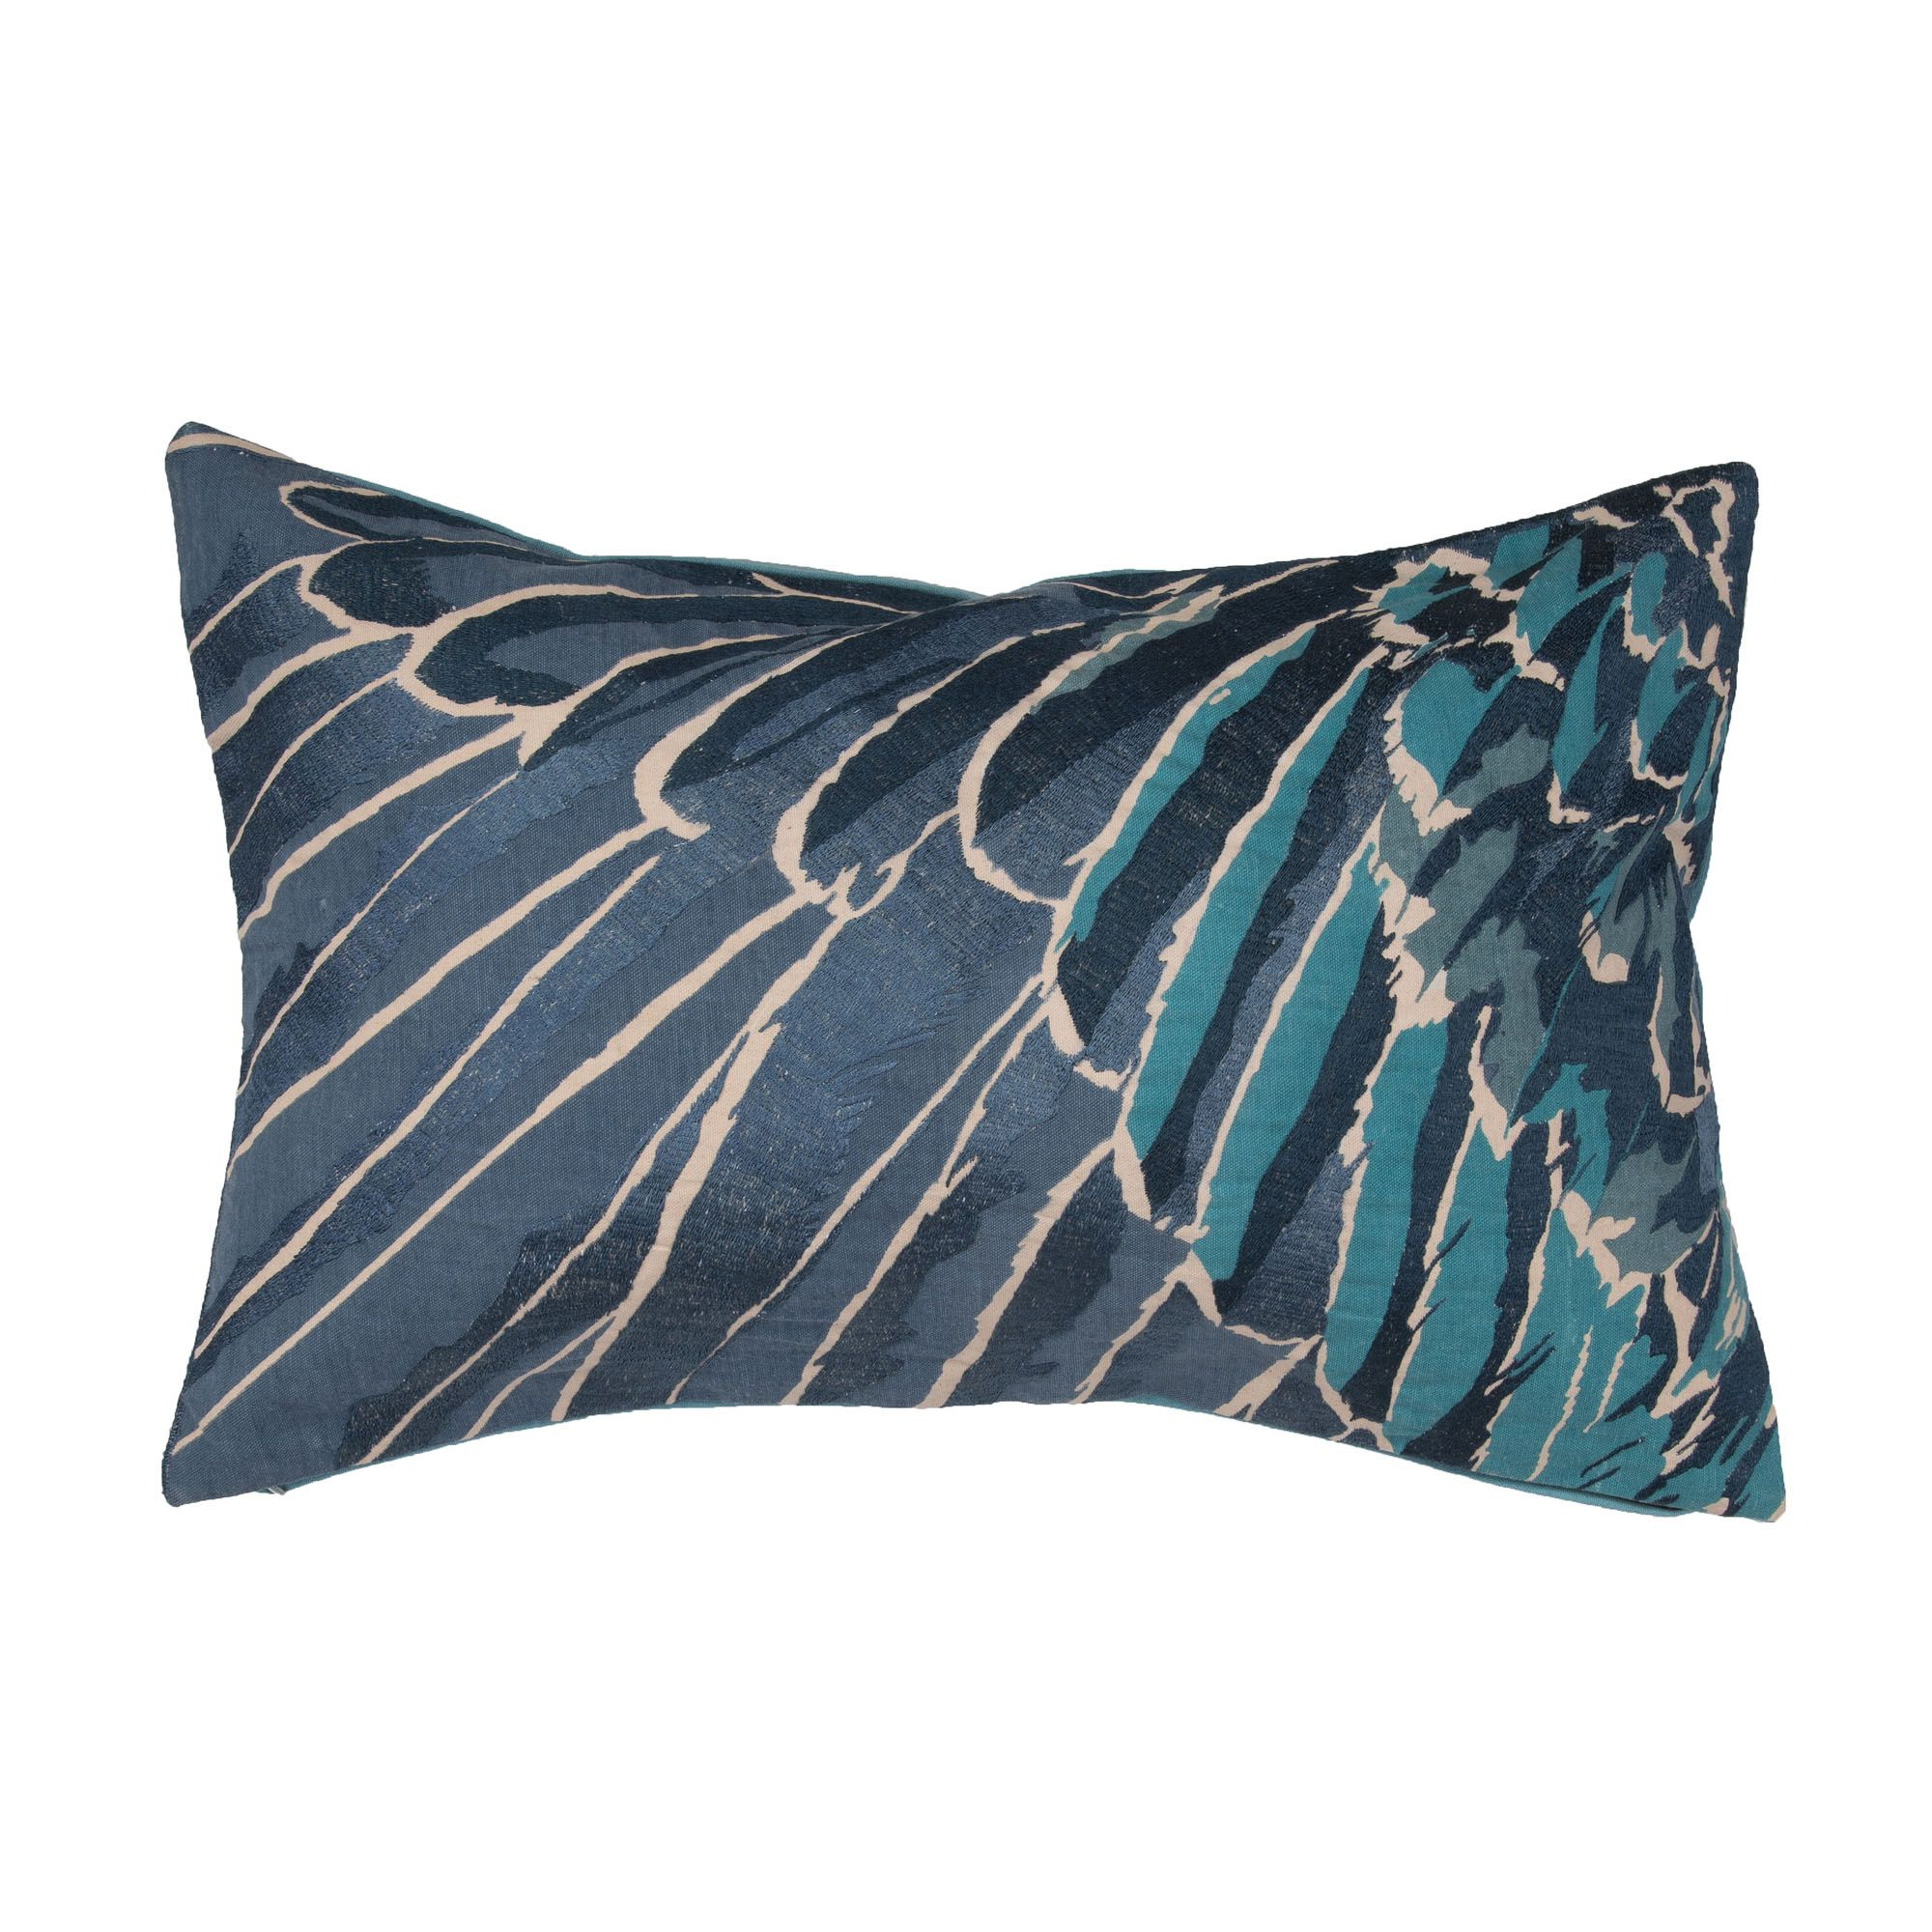 Fine Feathered Flair Extravagantly Elegant This Pretty Pillow Adds Dramatic Contemporary Pillows Pillows Modern Throw Pillows